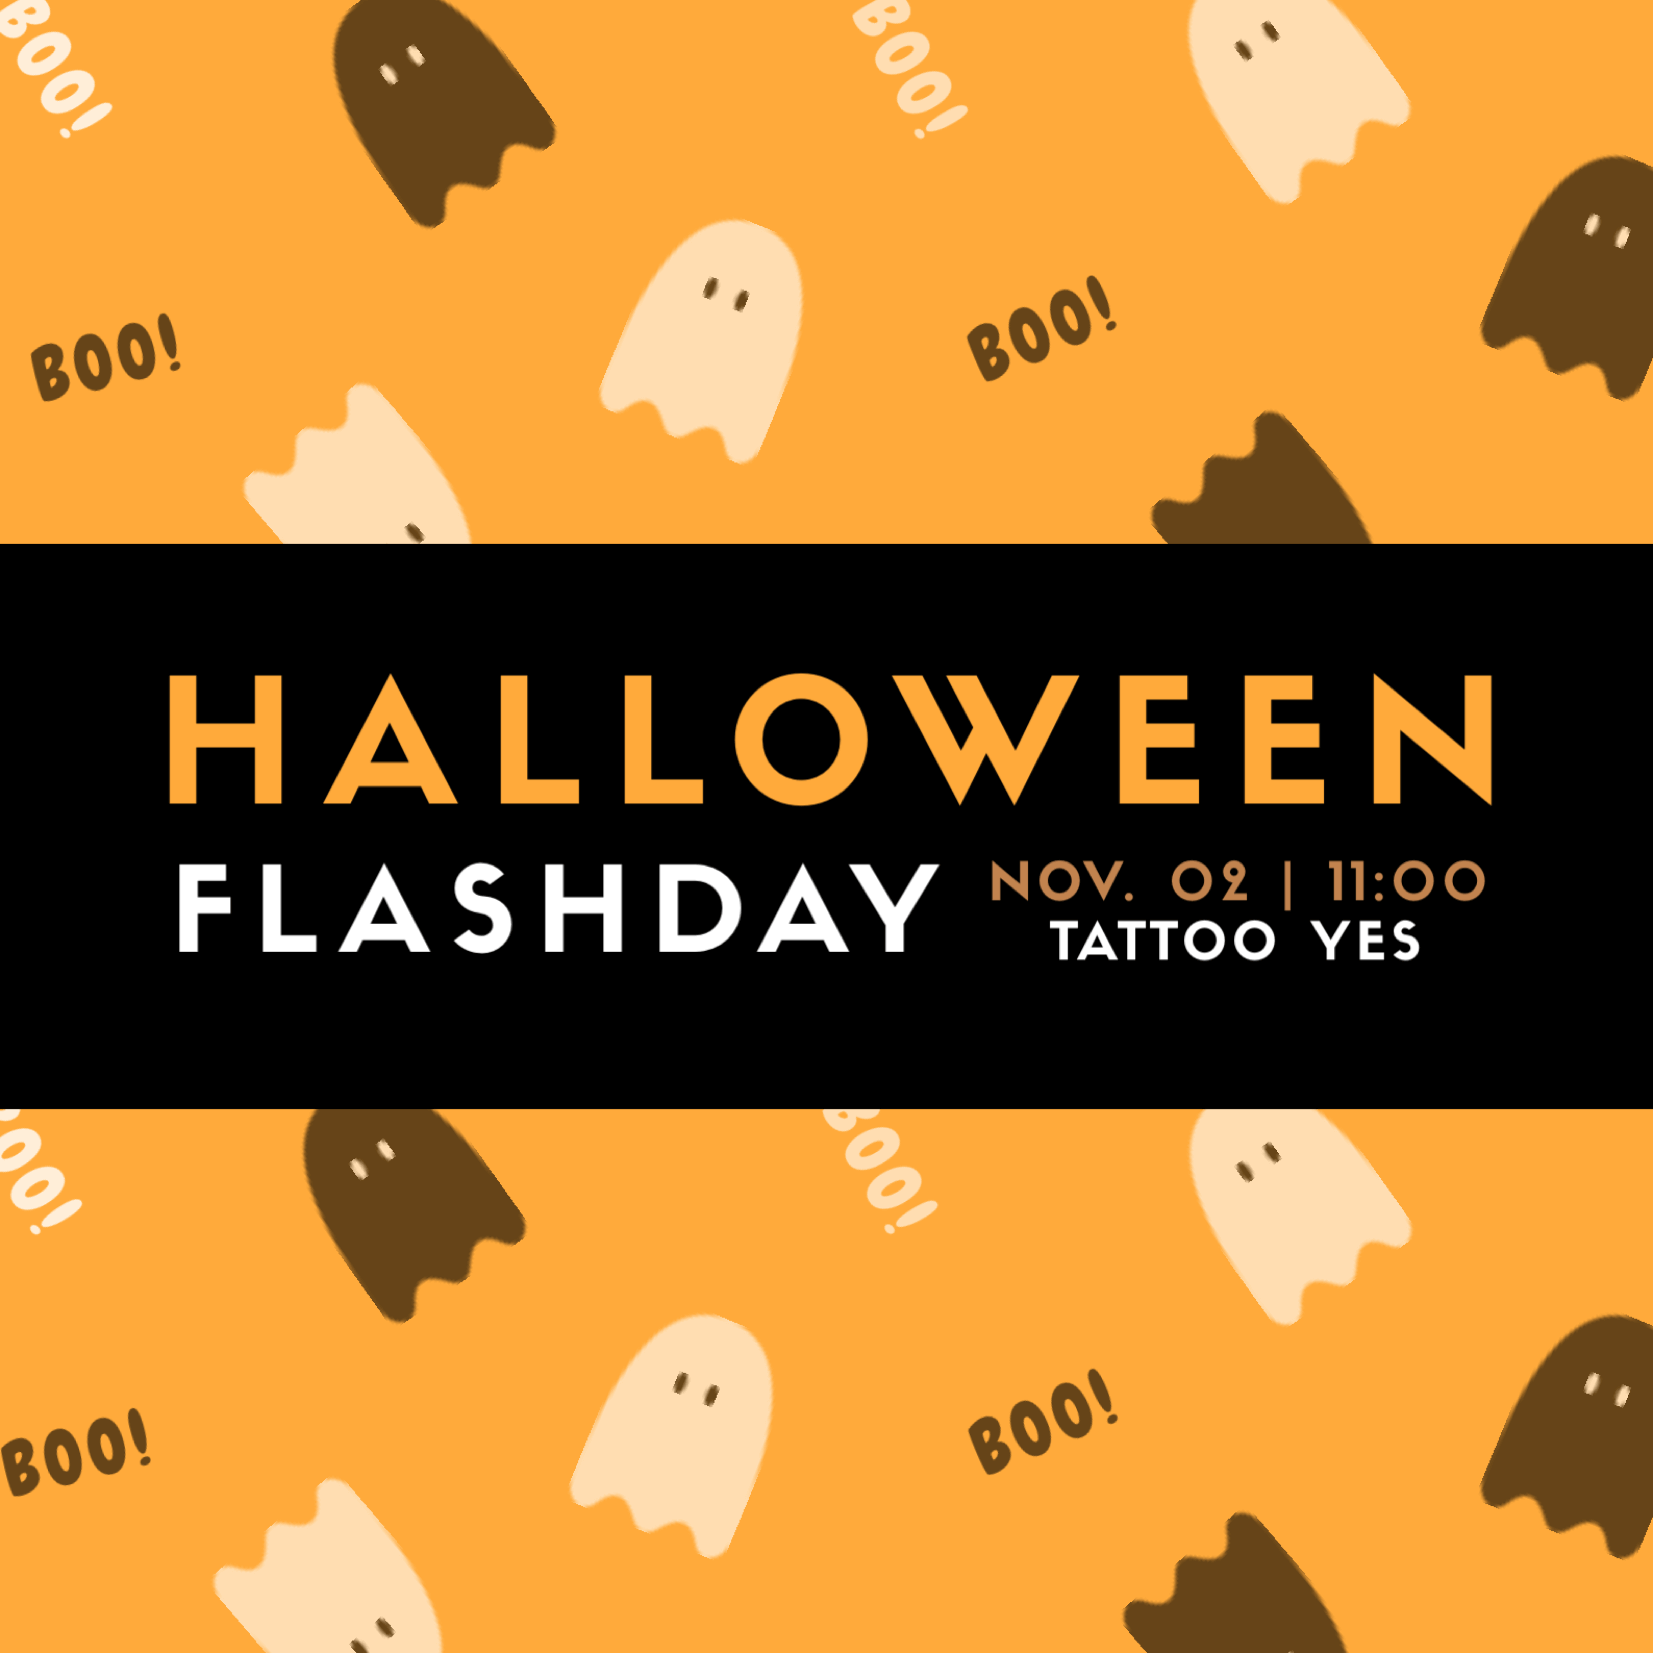 Halloween Flashday – 02 de Novembro 2019